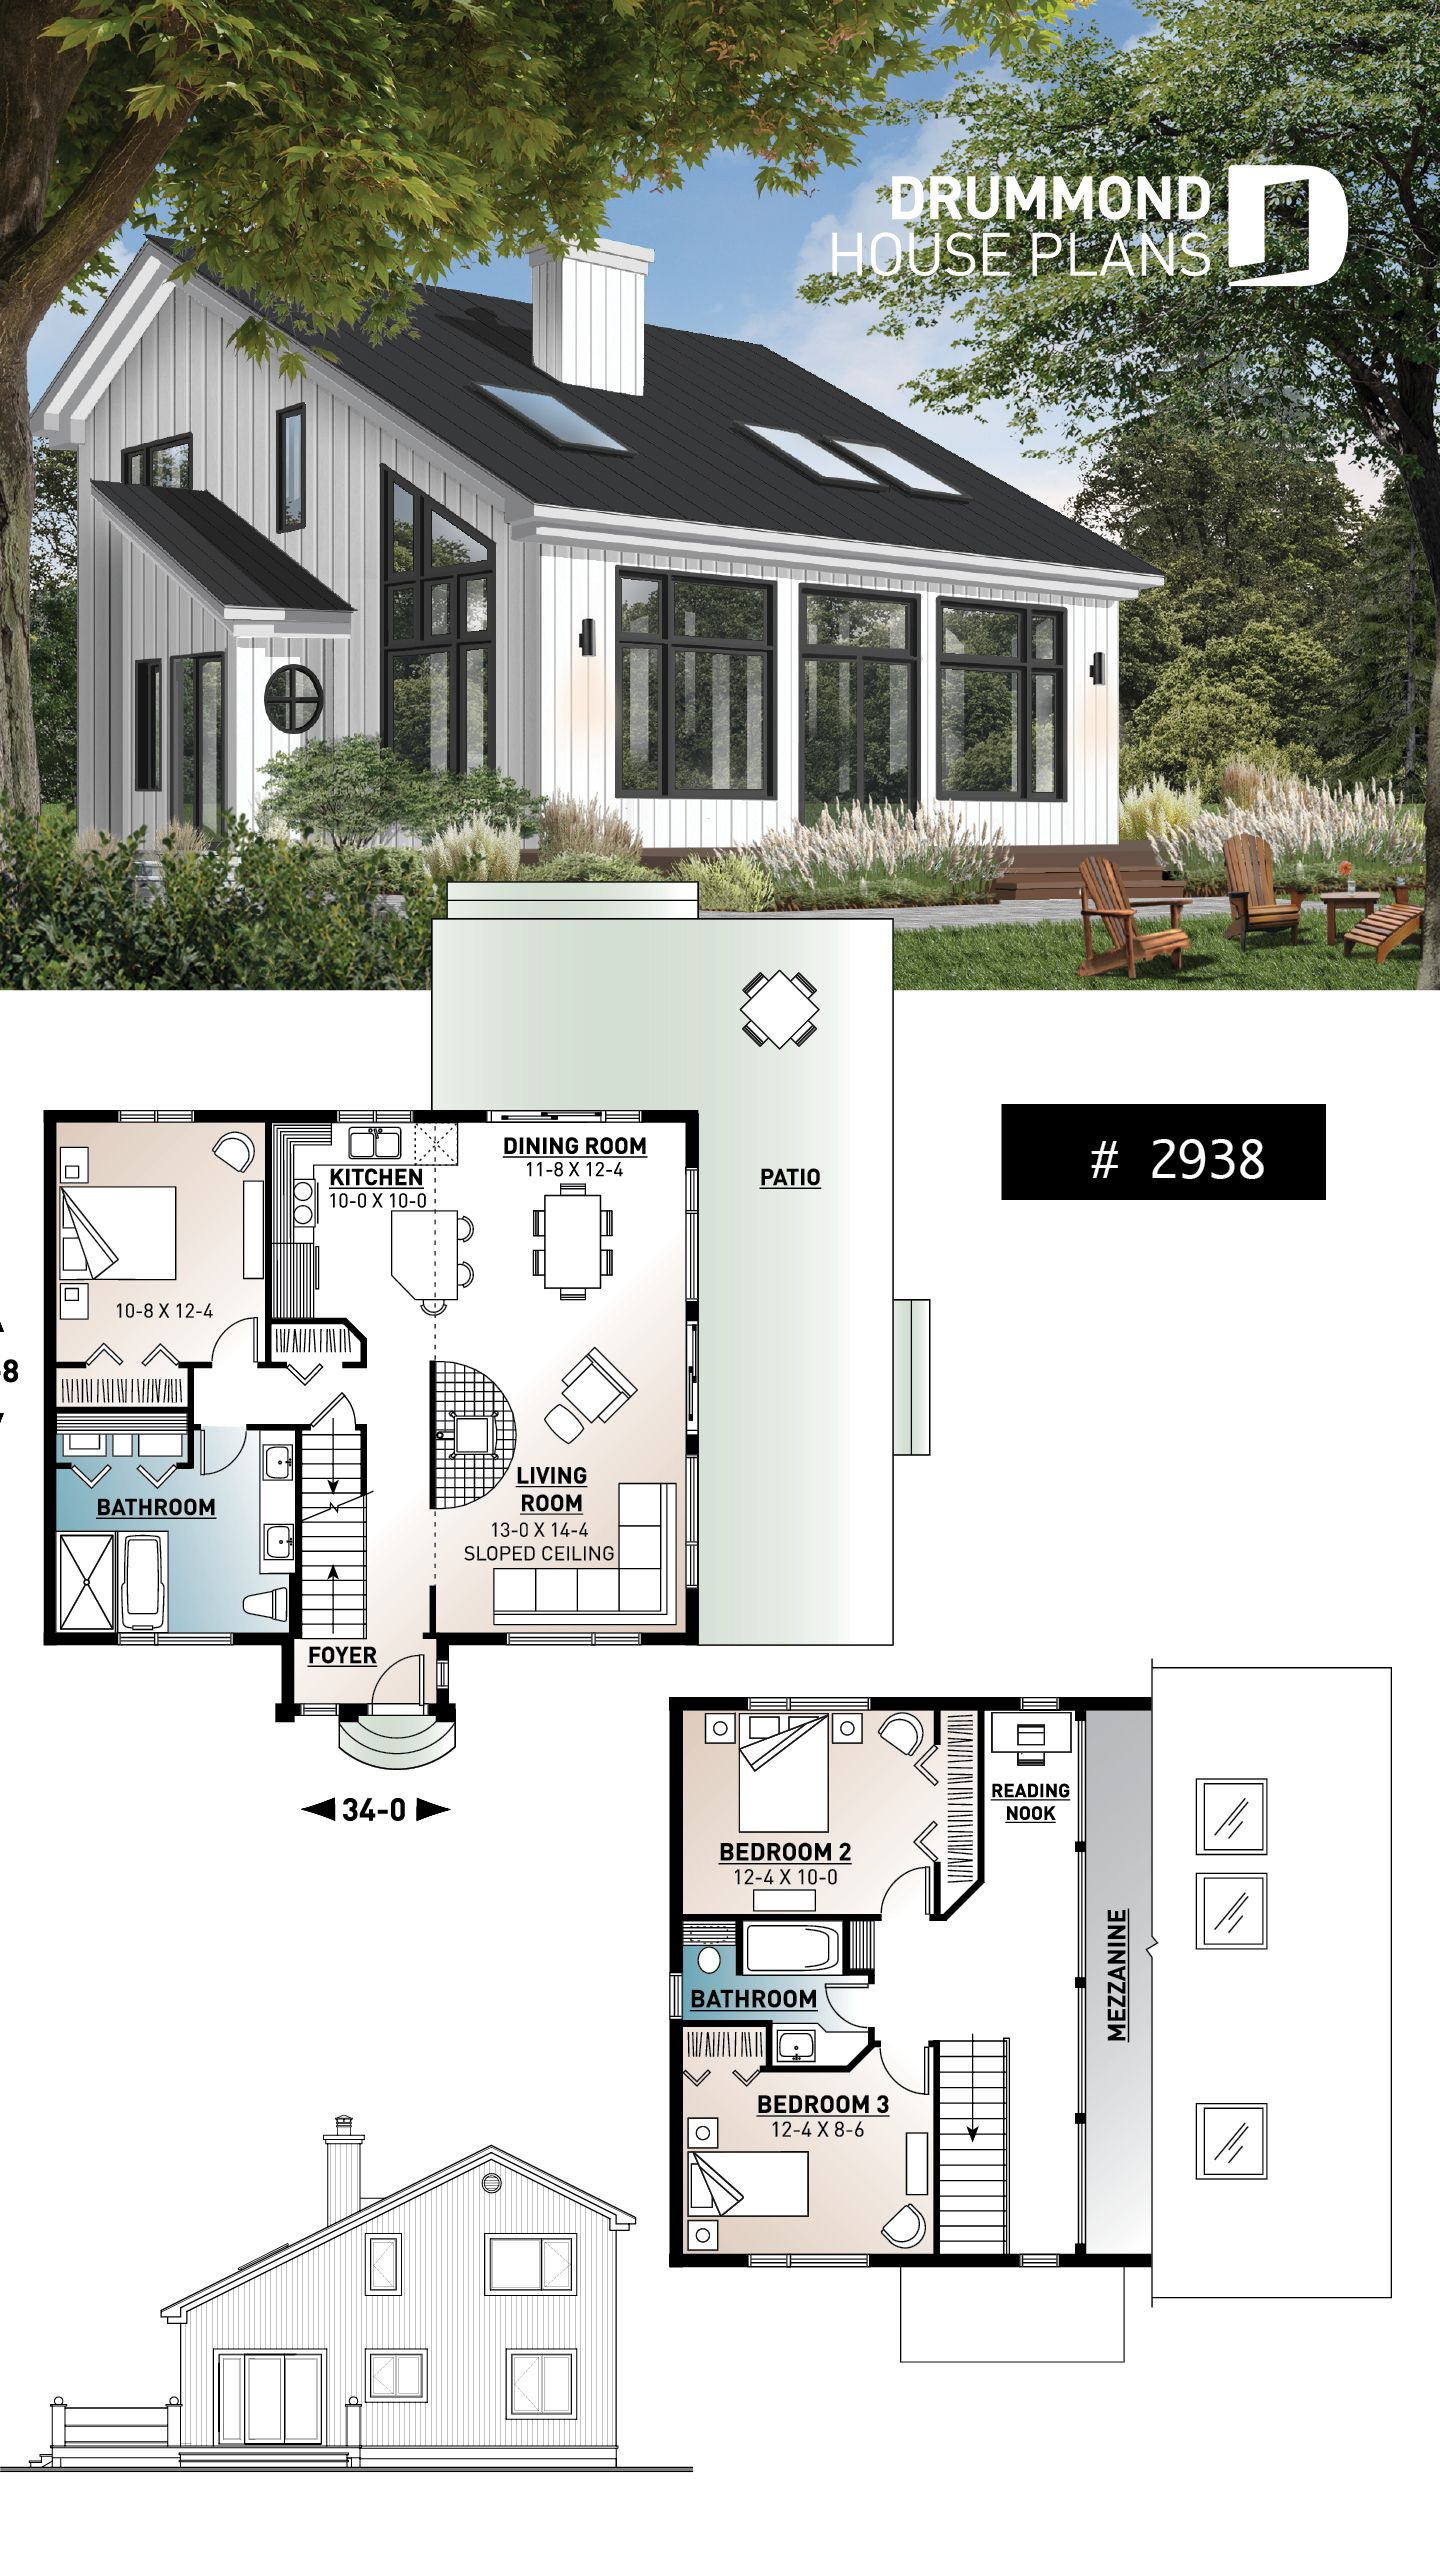 House Design Plans for Small Lots Lovely House Plan ataglance No 2938